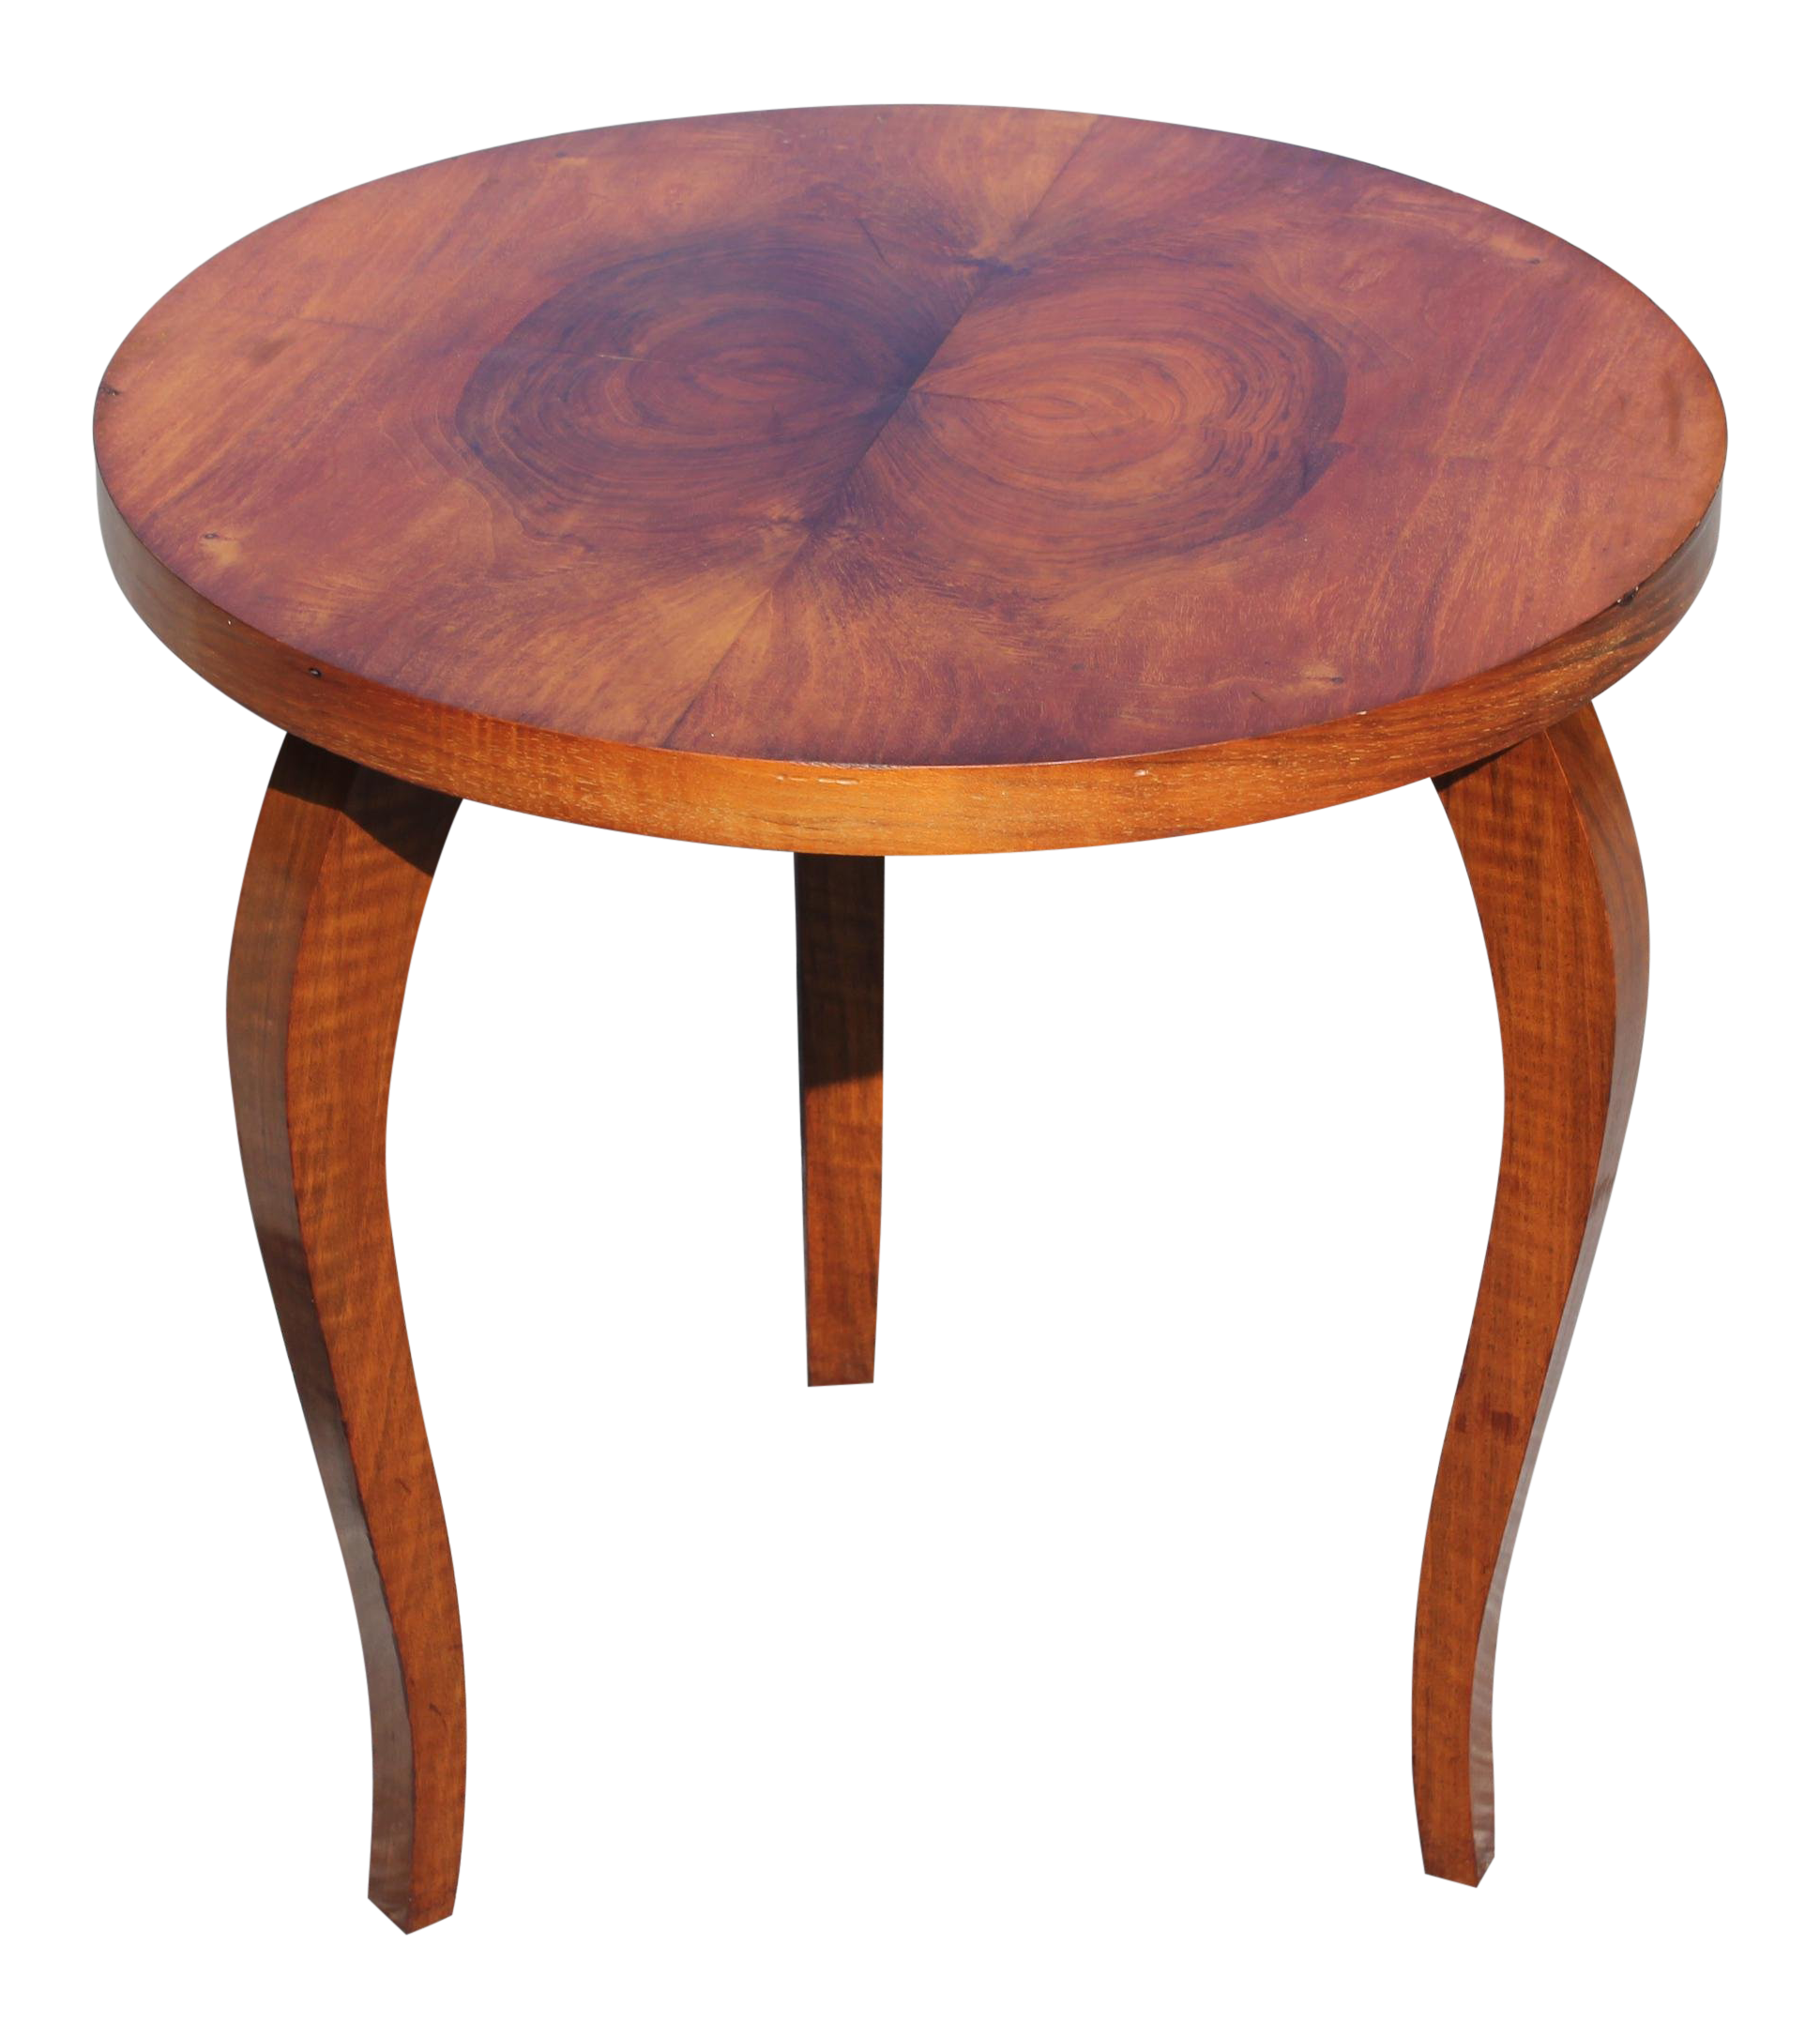 Charmant Classic French Art Deco Side Or Accent Round Table Exotic Walnut, Circa  1940s